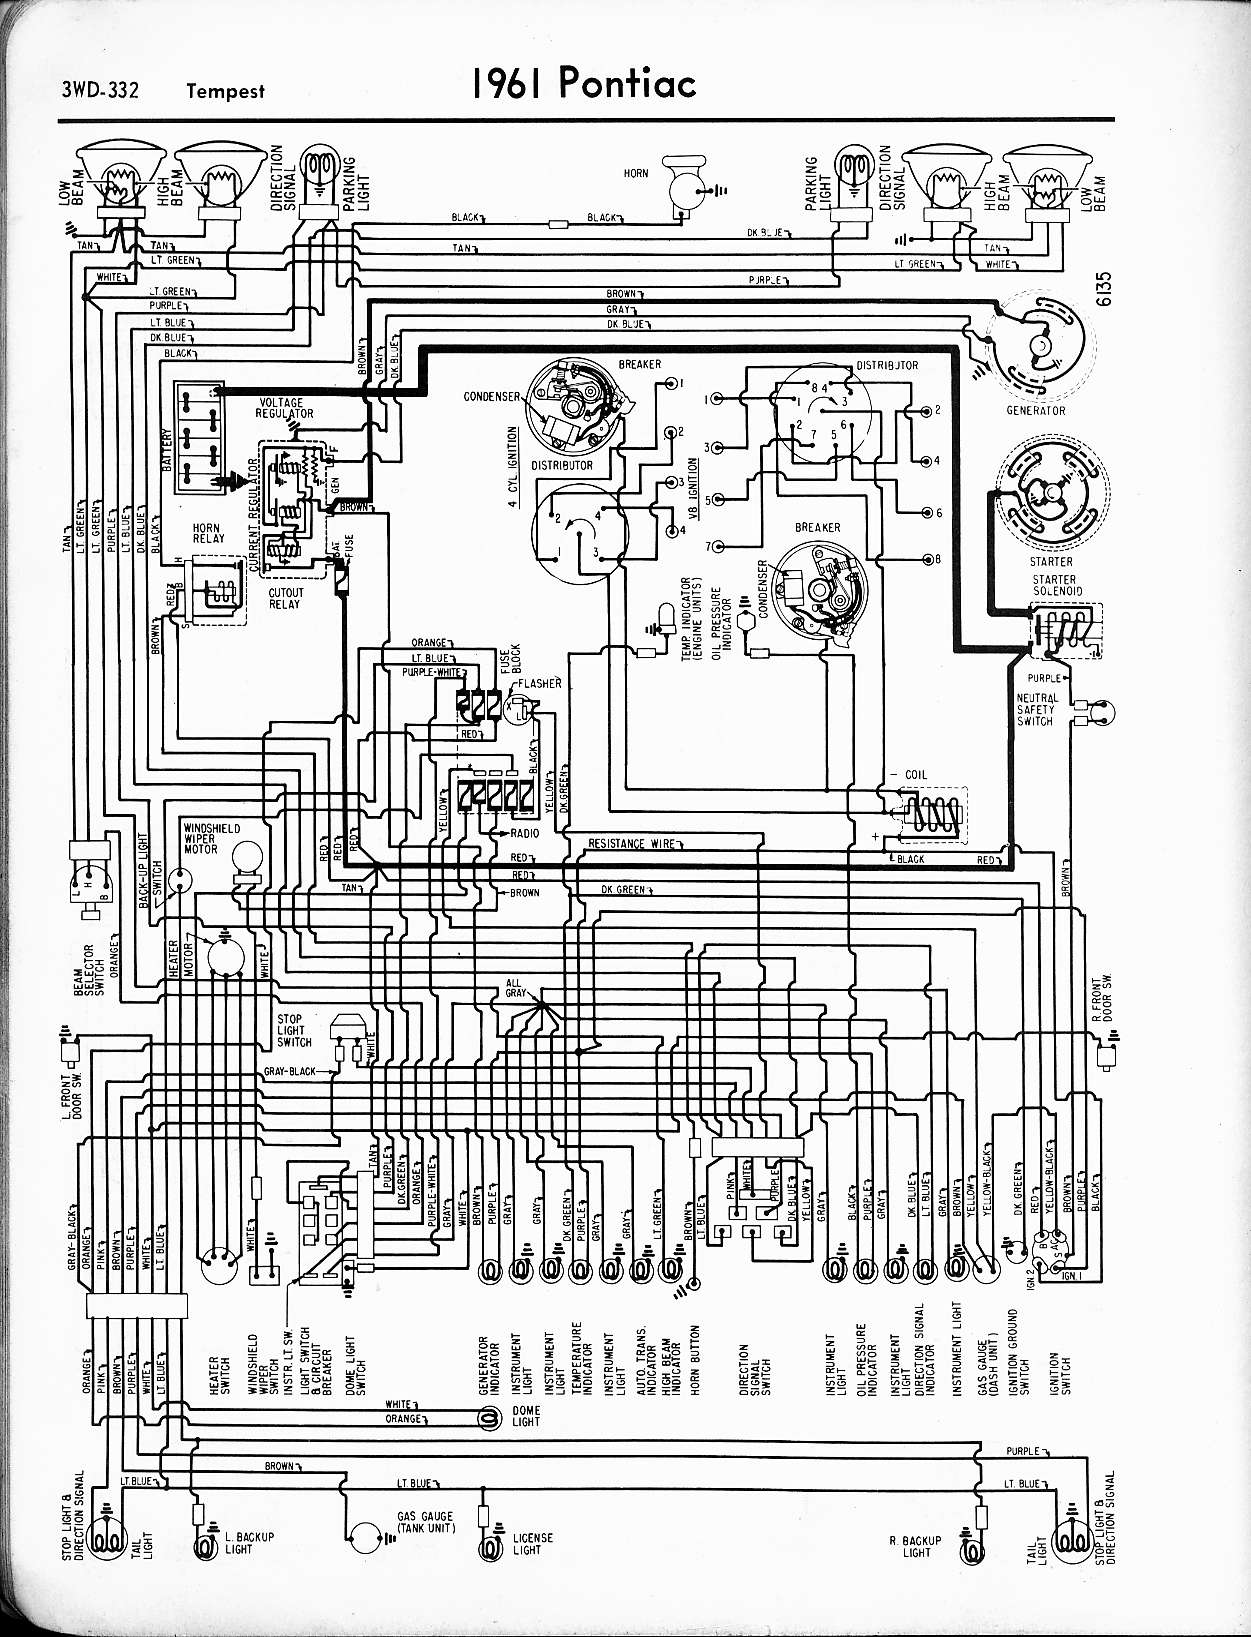 [WRG-7045] 1964 Pontiac Catalina Wiring Diagram